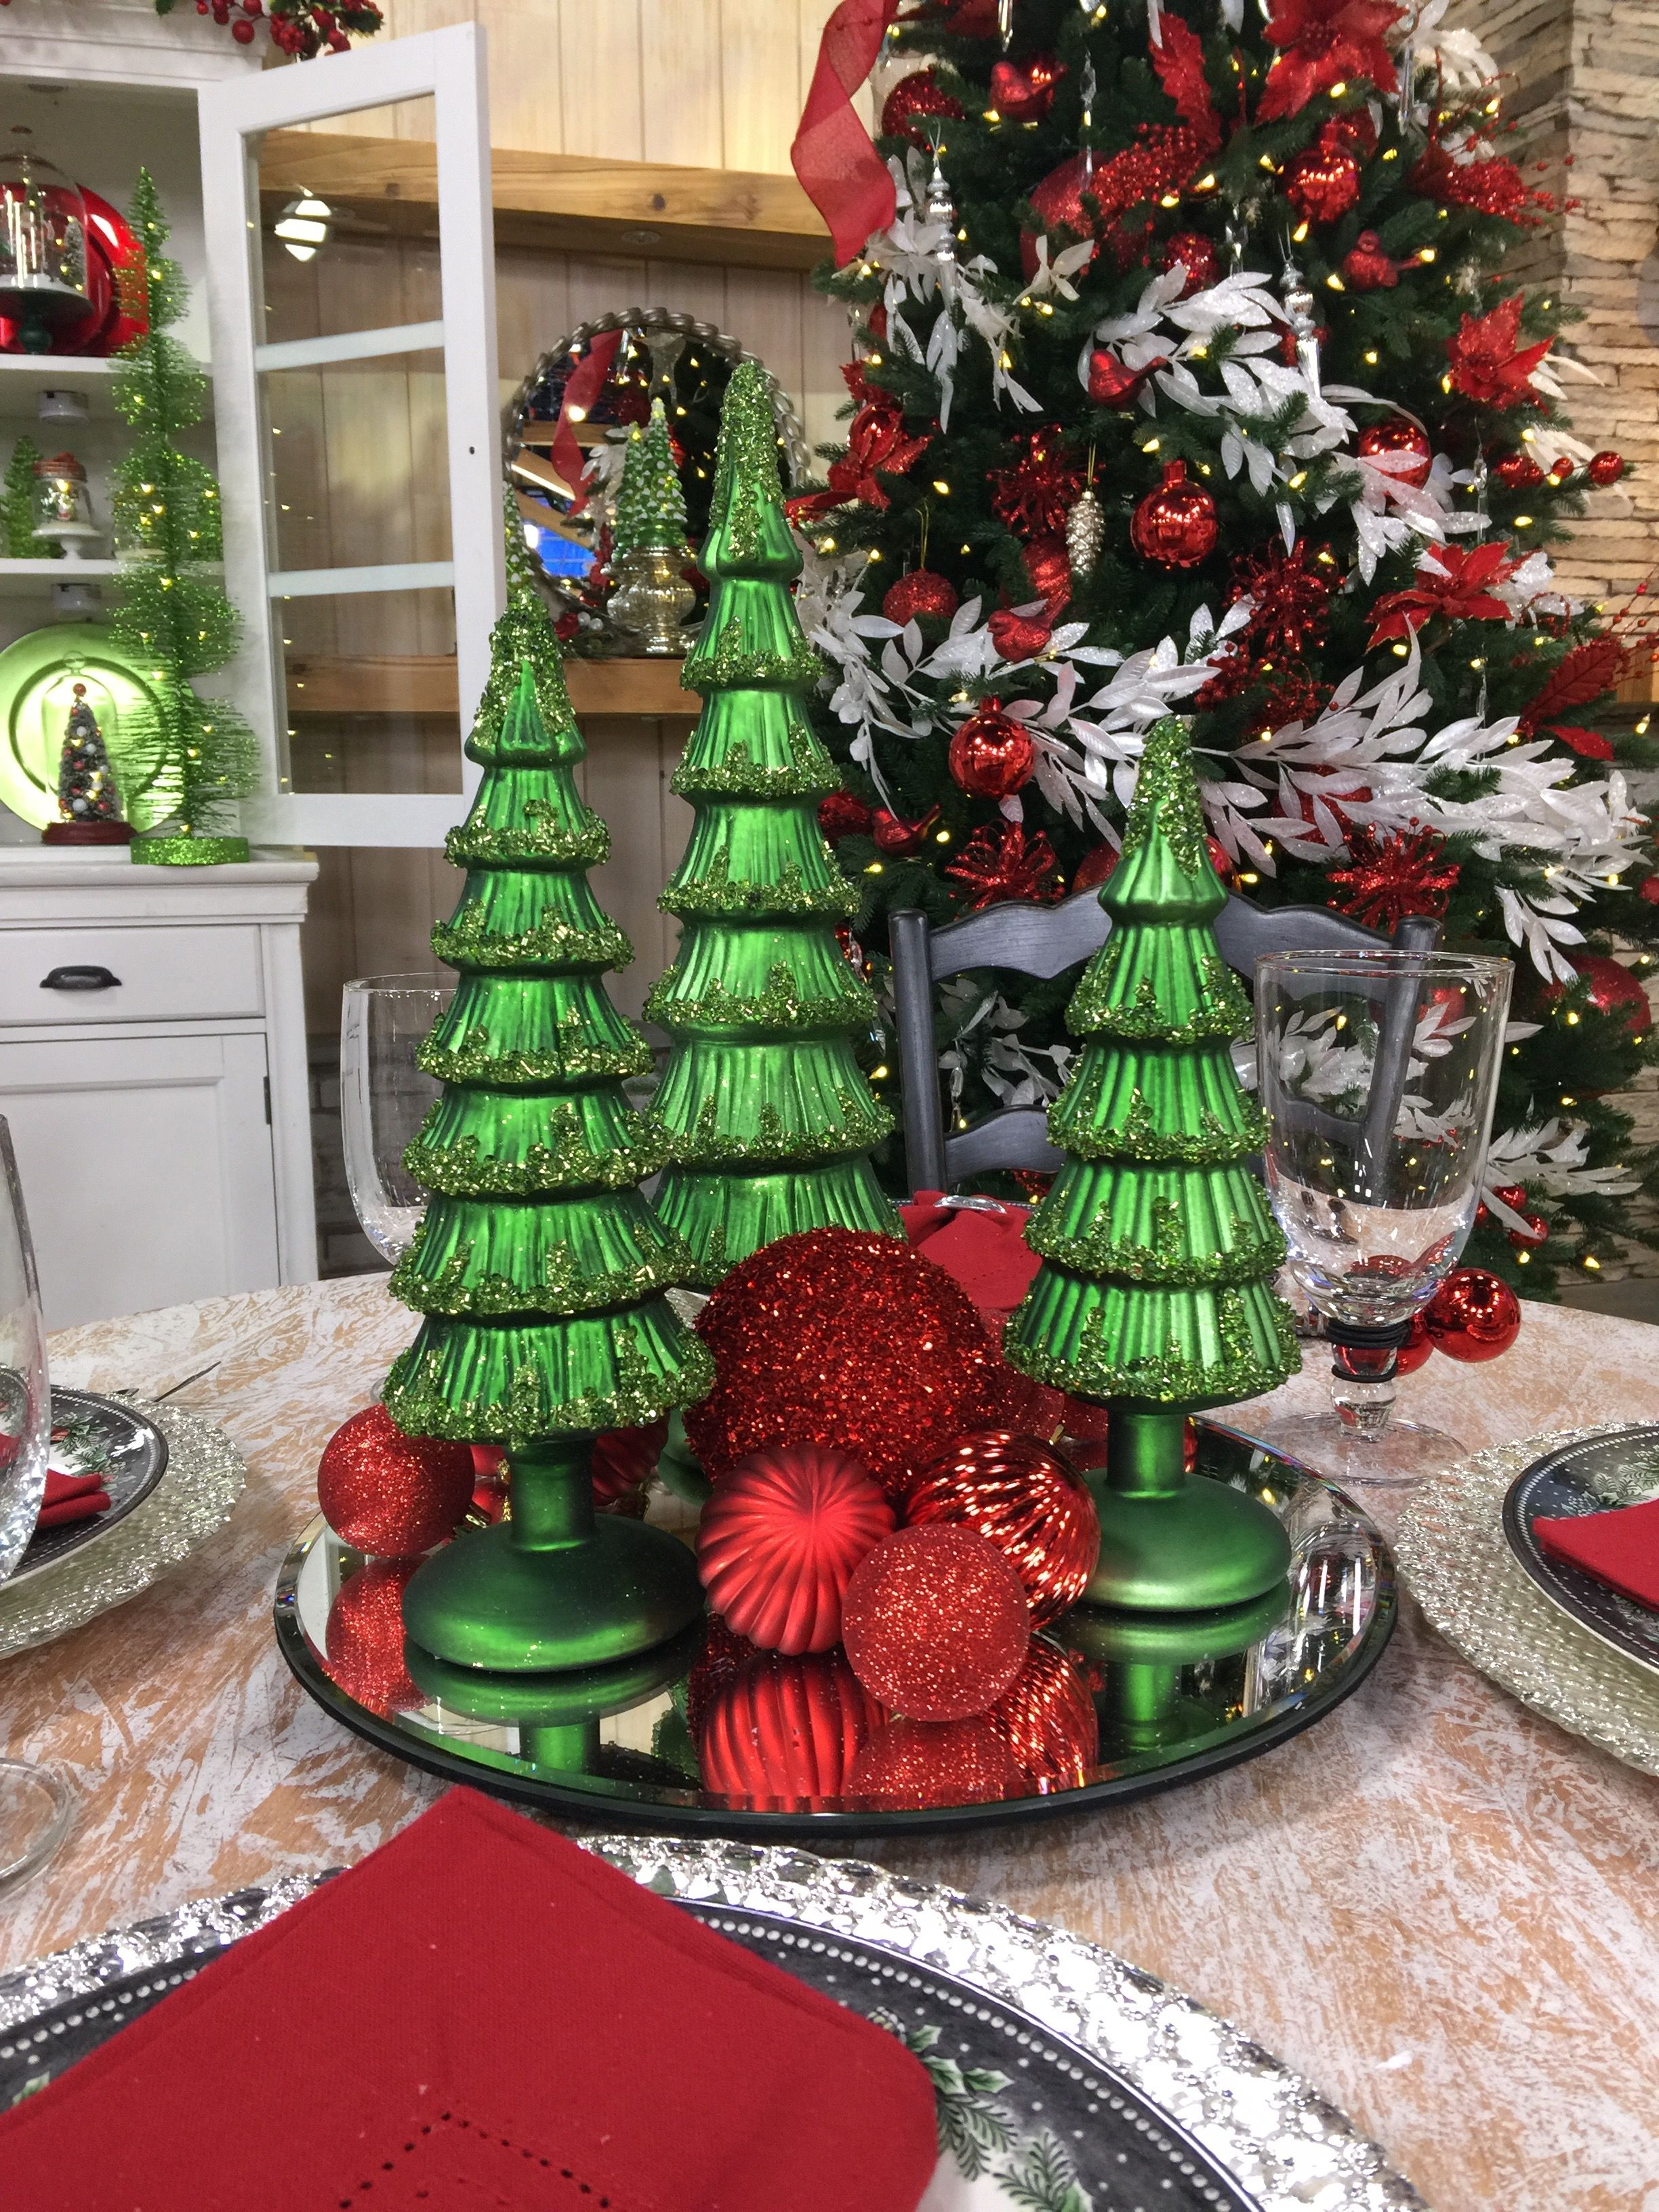 Pin By Jennifer Corrado On Valerie Parr Hill Decorating Qvc With Images Valerie Parr Hill Christmas Christmas Decorations For The Home Christmas Decorations